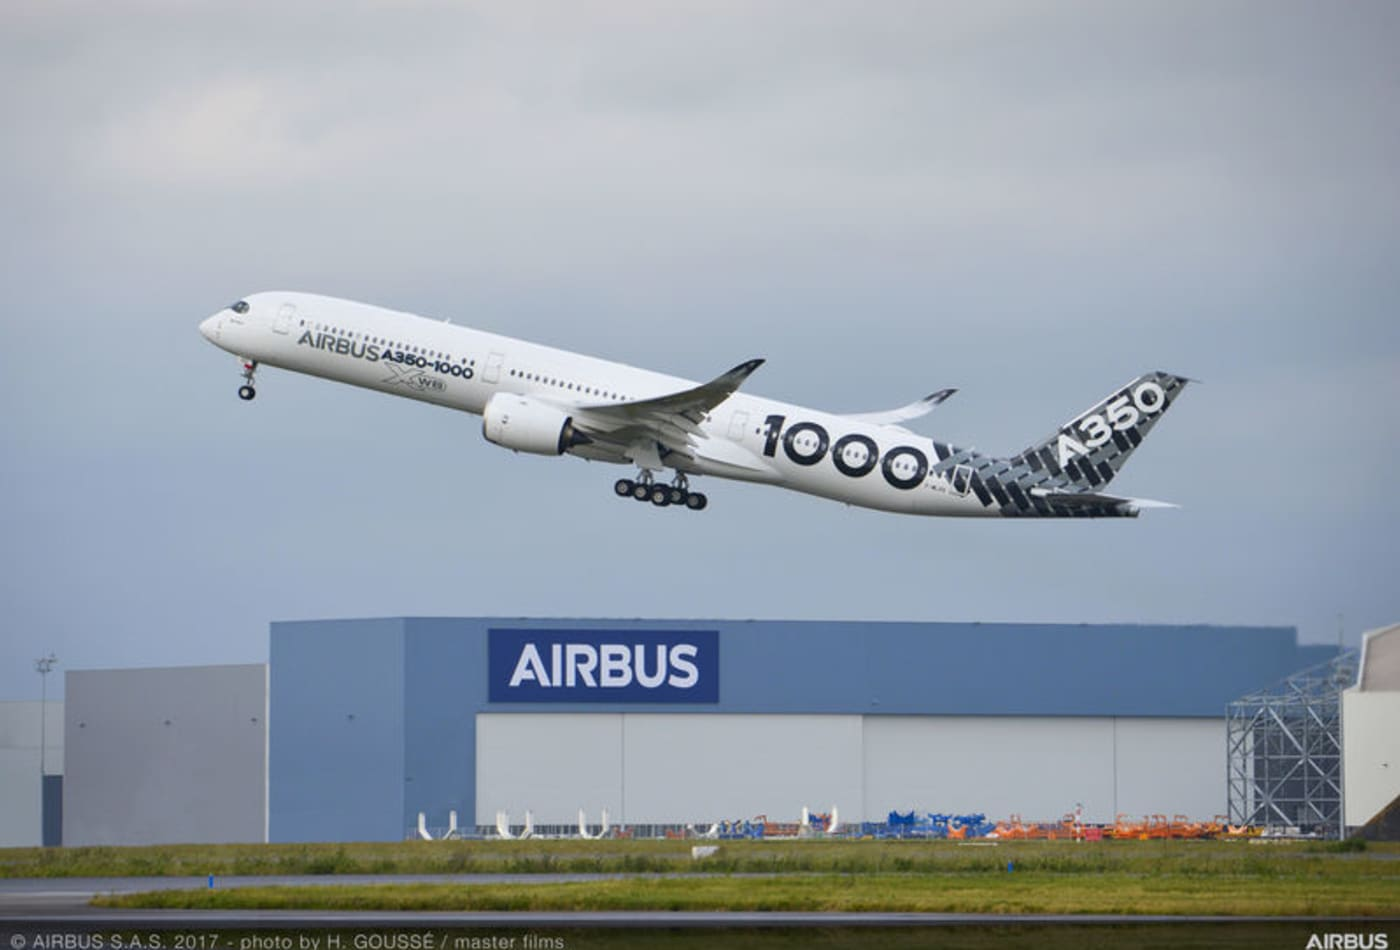 Airbus releases photos of automatic takeoffs